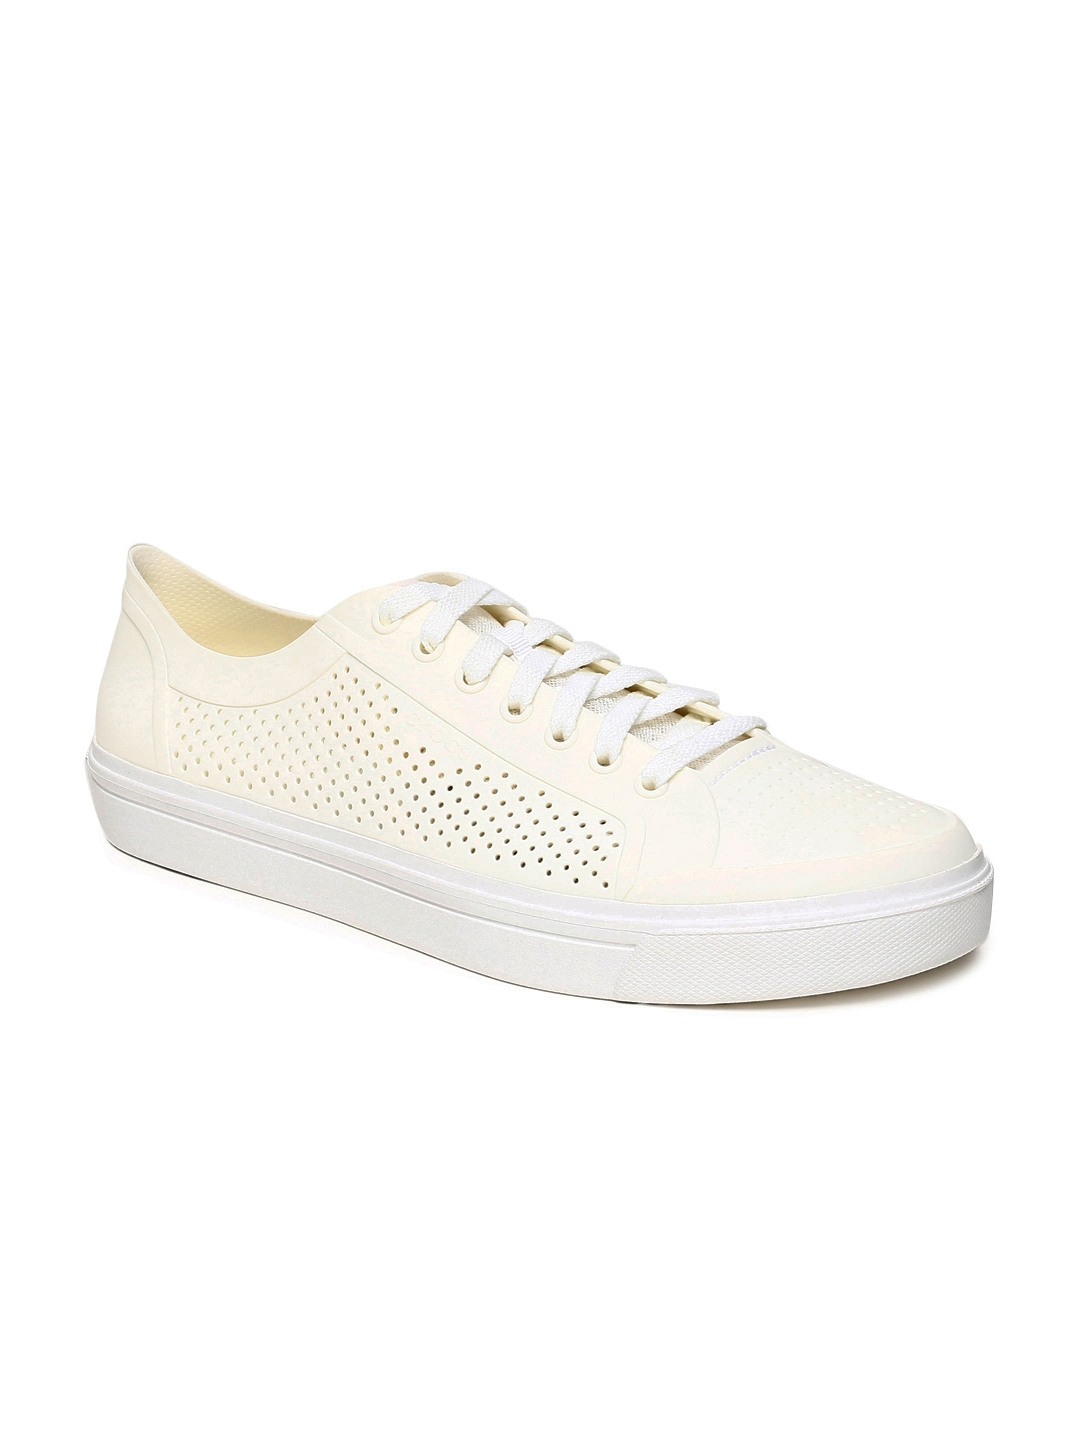 cfa3a8174 Crocs Men White Citilane Roka Court Sneakers. This product is already at  its best price